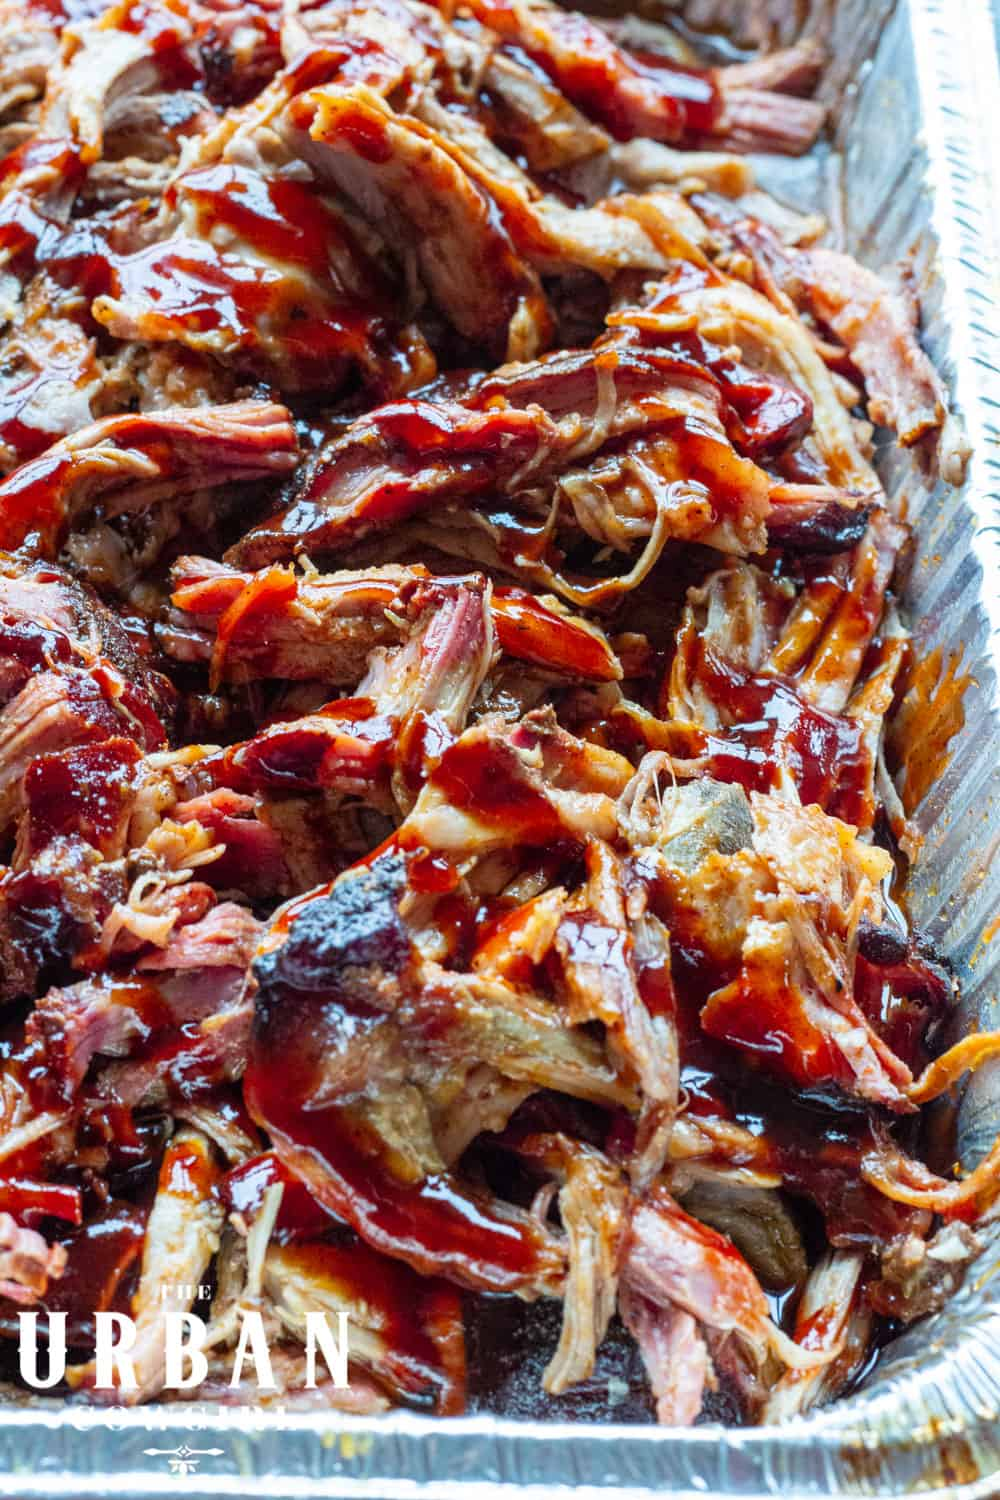 A close up tray of juicy pulled pork with red barbecue sauce.